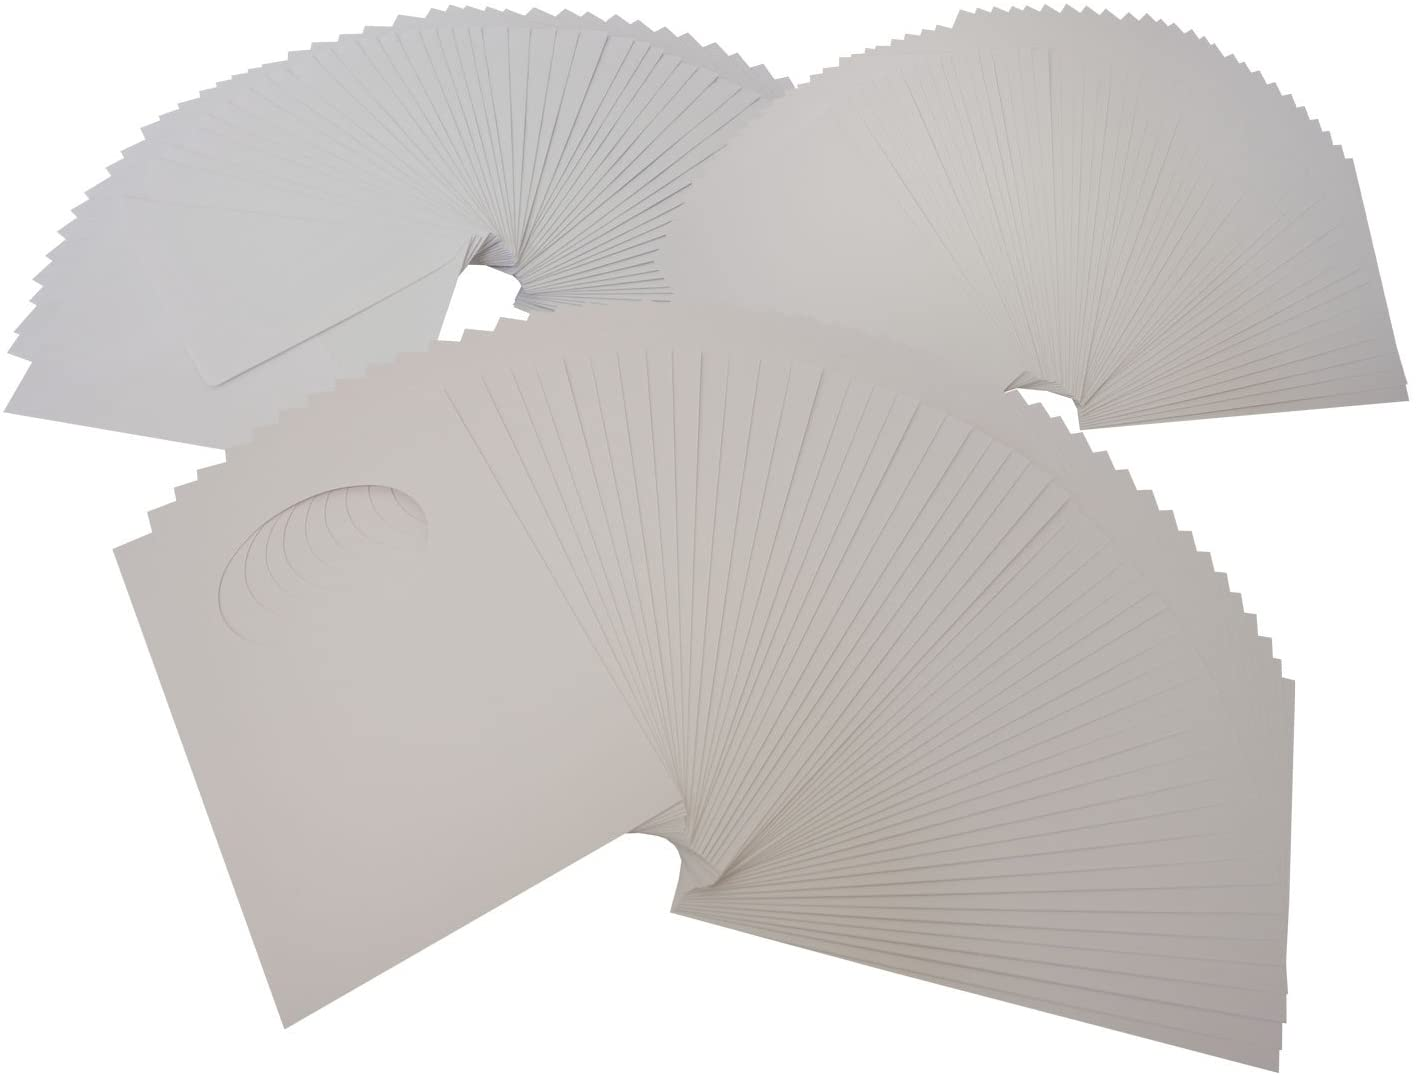 folia 8767Passepartout Cards Pack of 50White Oval Cut-Out